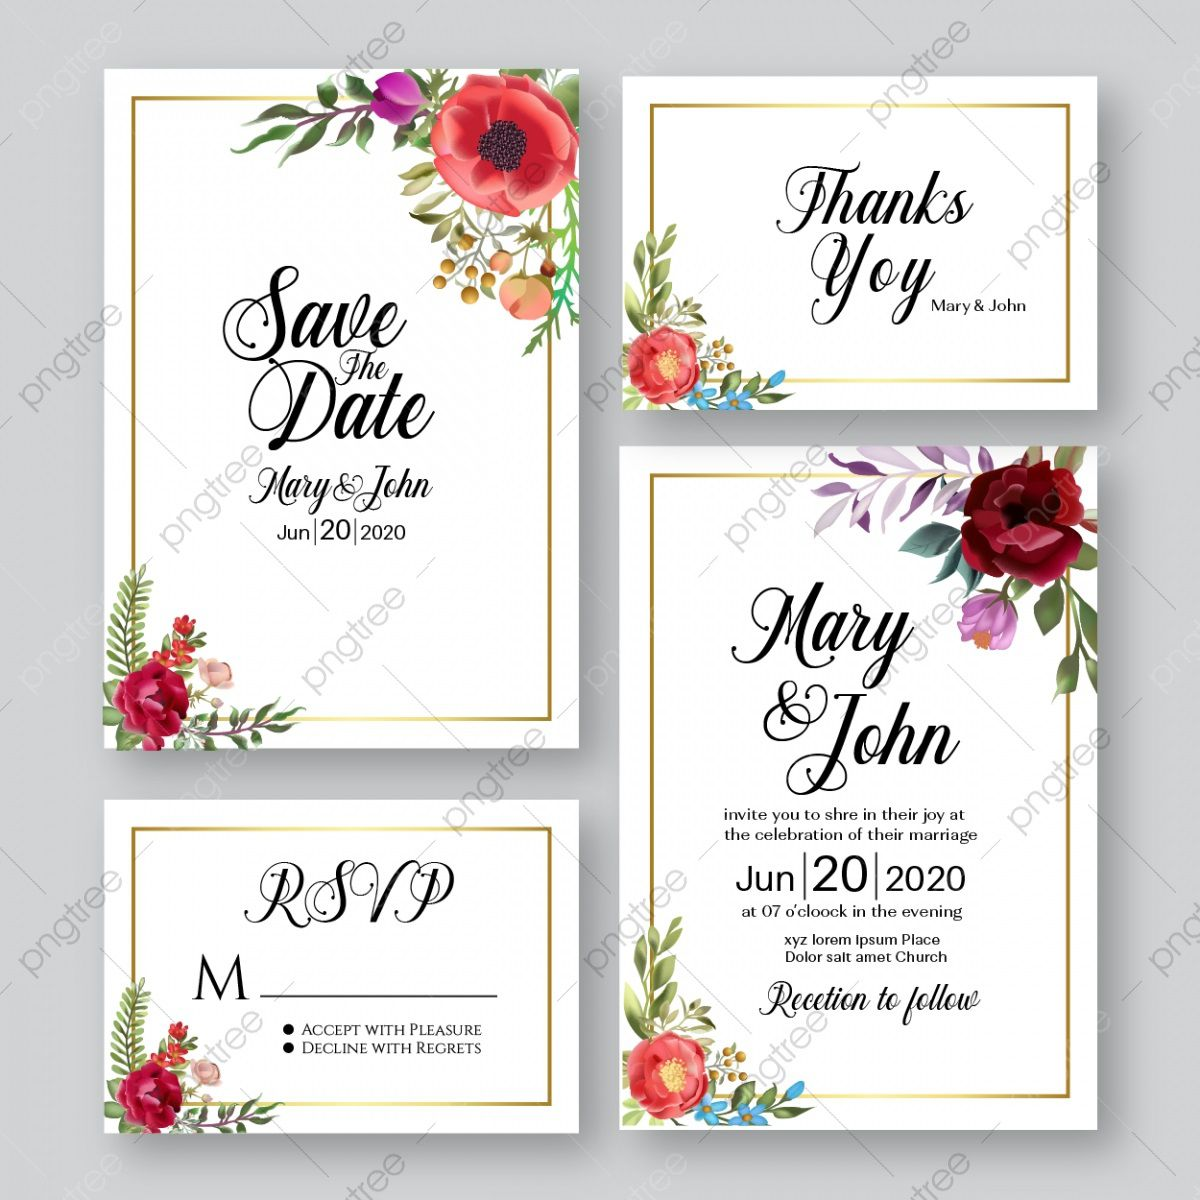 008 Breathtaking Free Download Invitation Card Format Design  Marriage In Word Psd WeddingFull